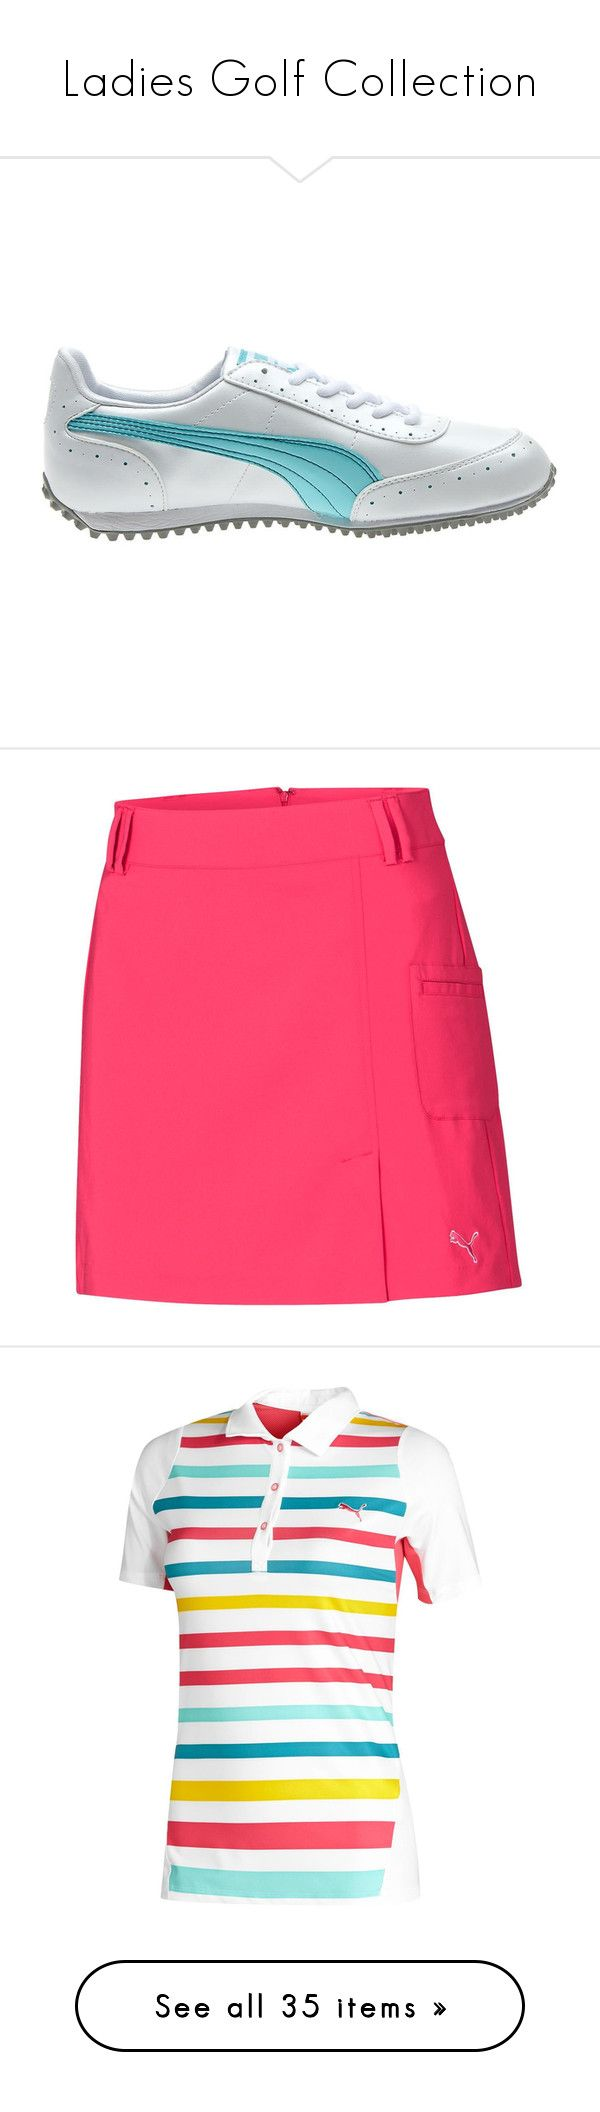 """""""Ladies Golf Collection"""" by puma ❤ liked on Polyvore featuring Puma, skirts, cleats, lexi thompson, rickie fowler, vests, puma, polos, golf and shoes"""